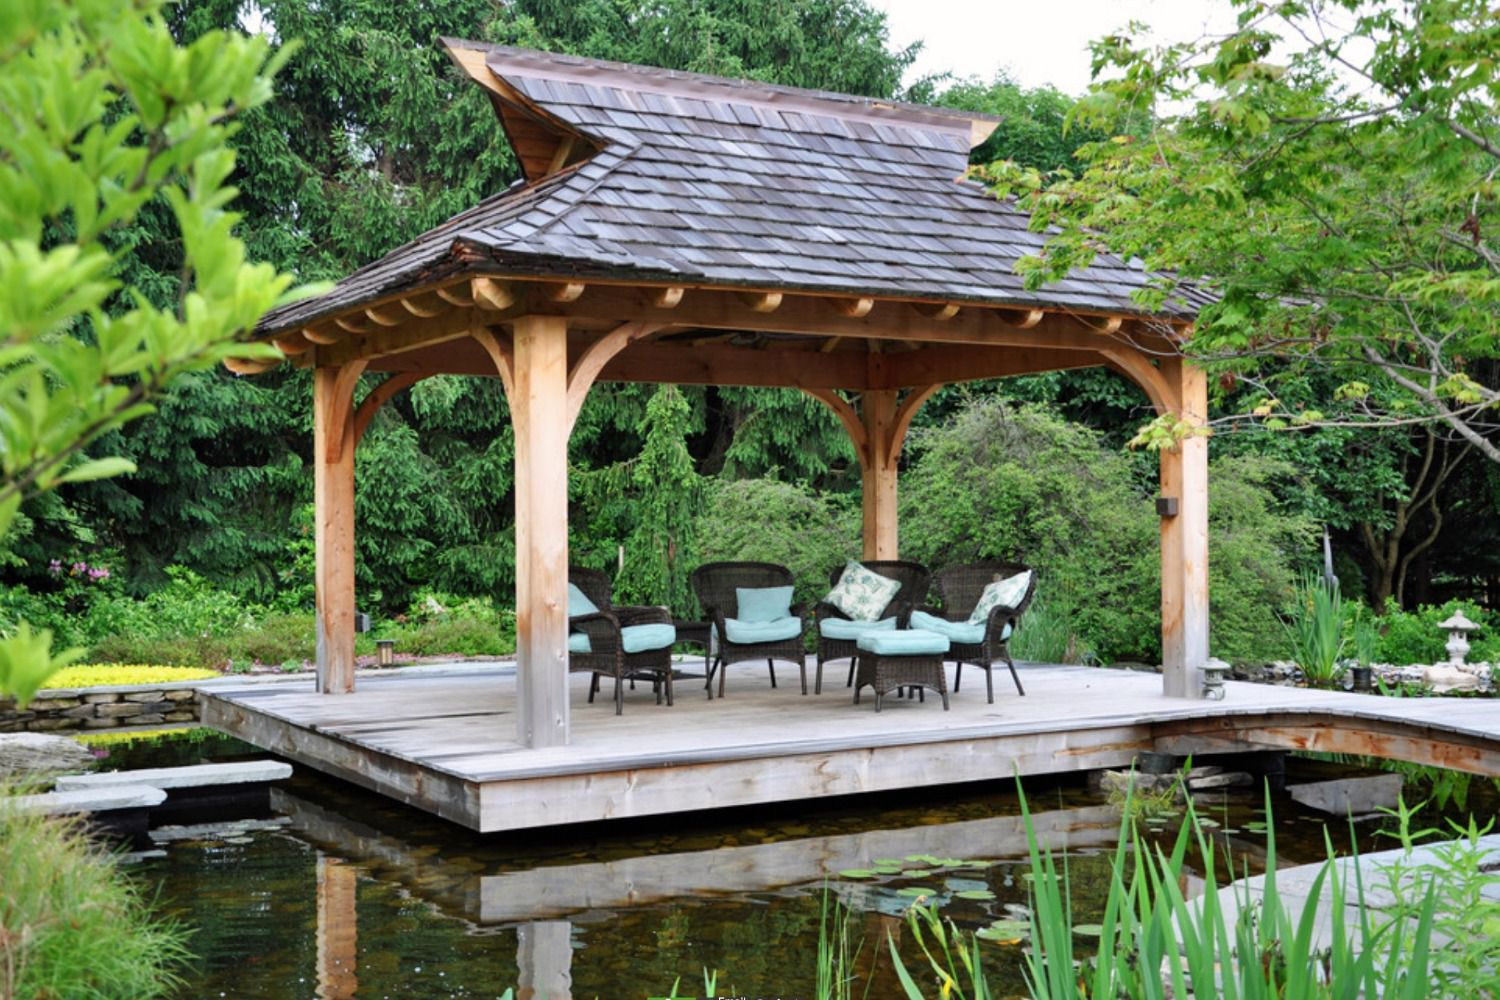 27 Gorgeous Gazebo Design Ideas intended for Gazebo Ideas For Backyard